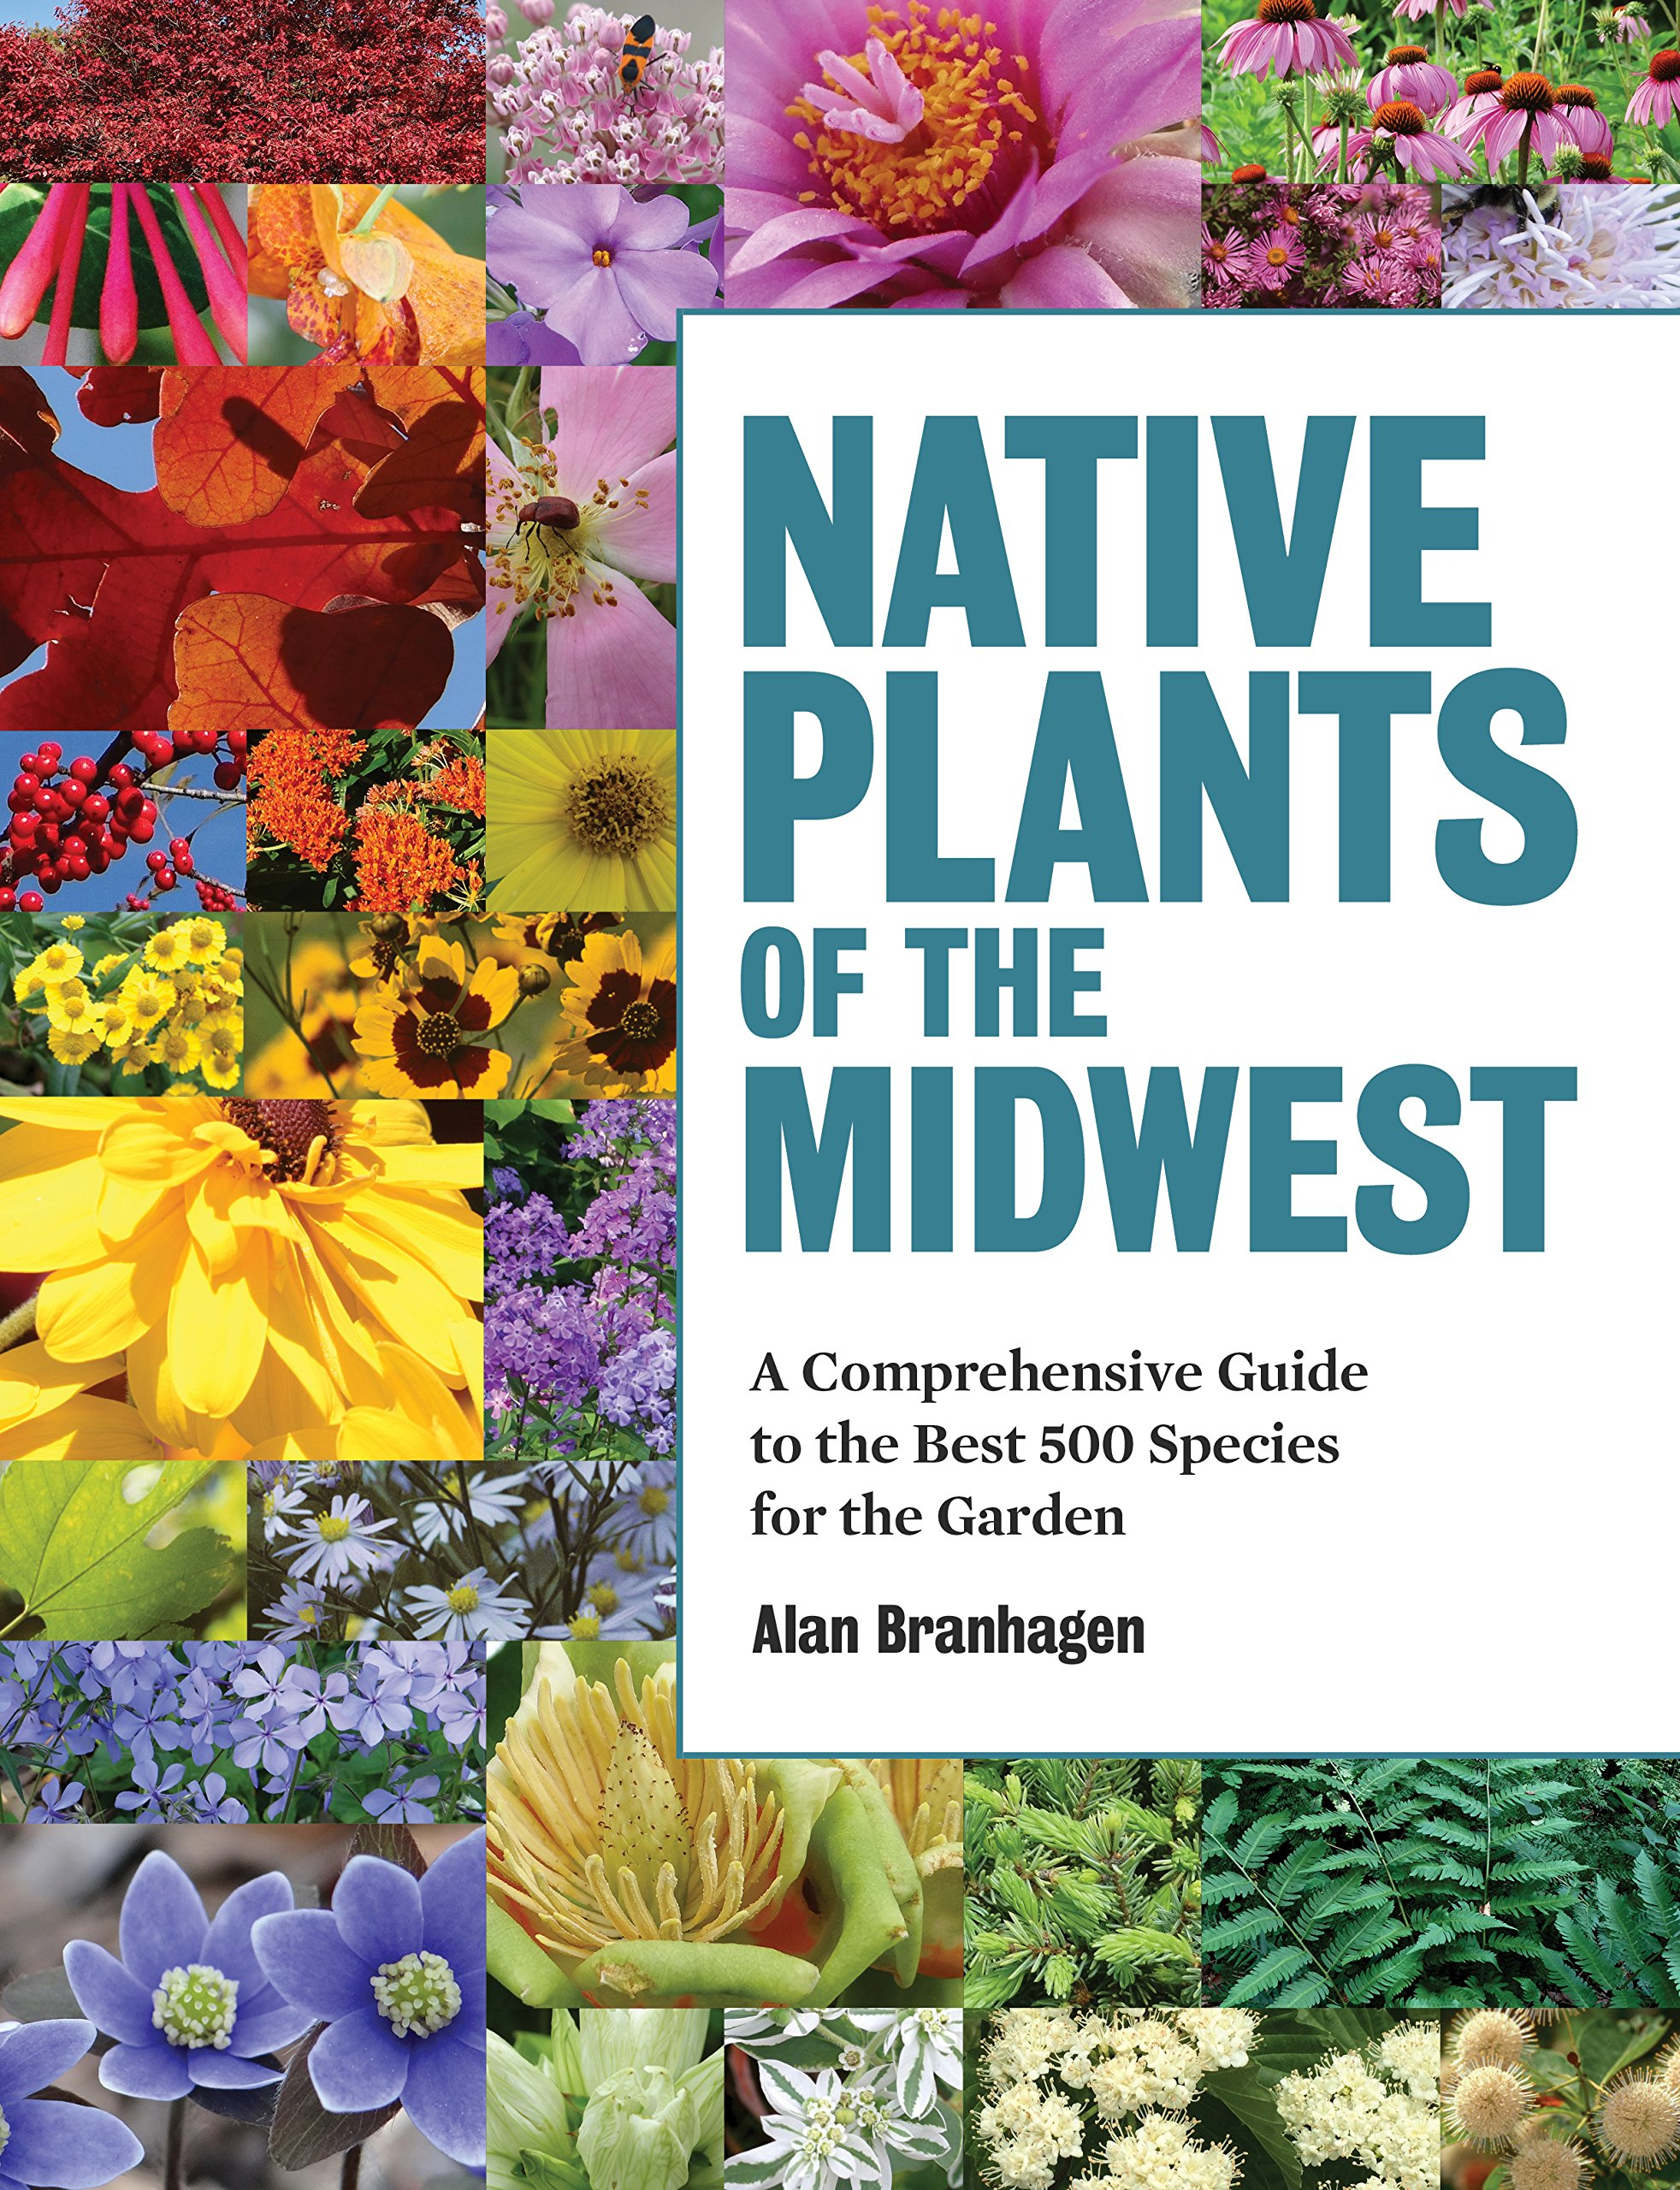 Native Plants of the Midwest: A Comprehensive Guide to the Best 500 Species for the Garden